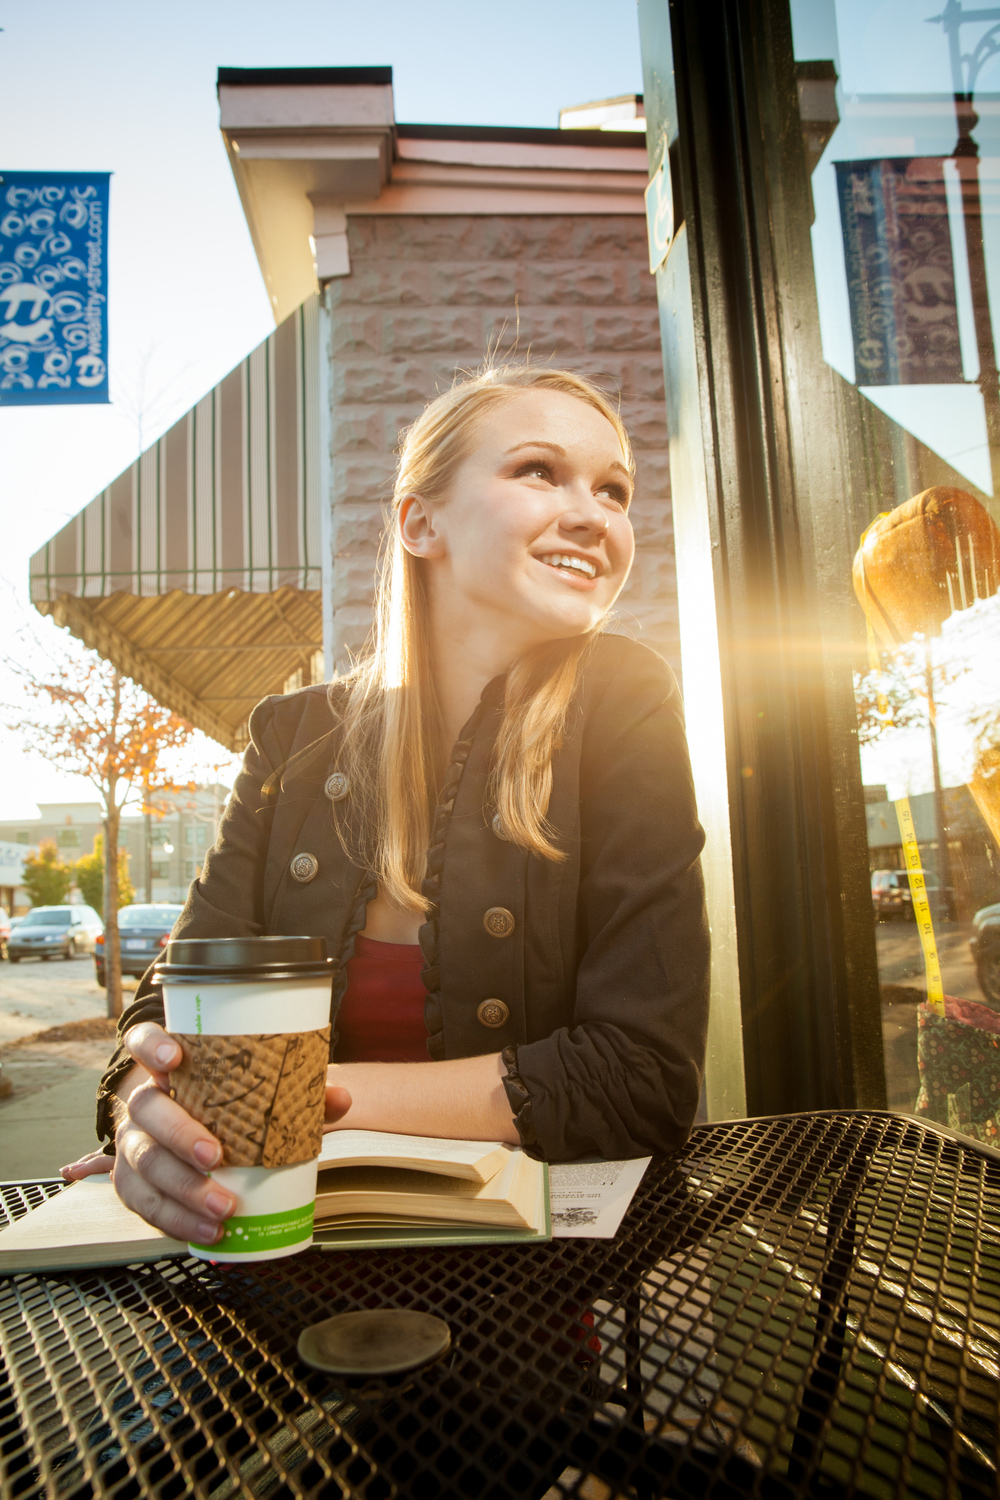 outdoor portrait at a coffee shop